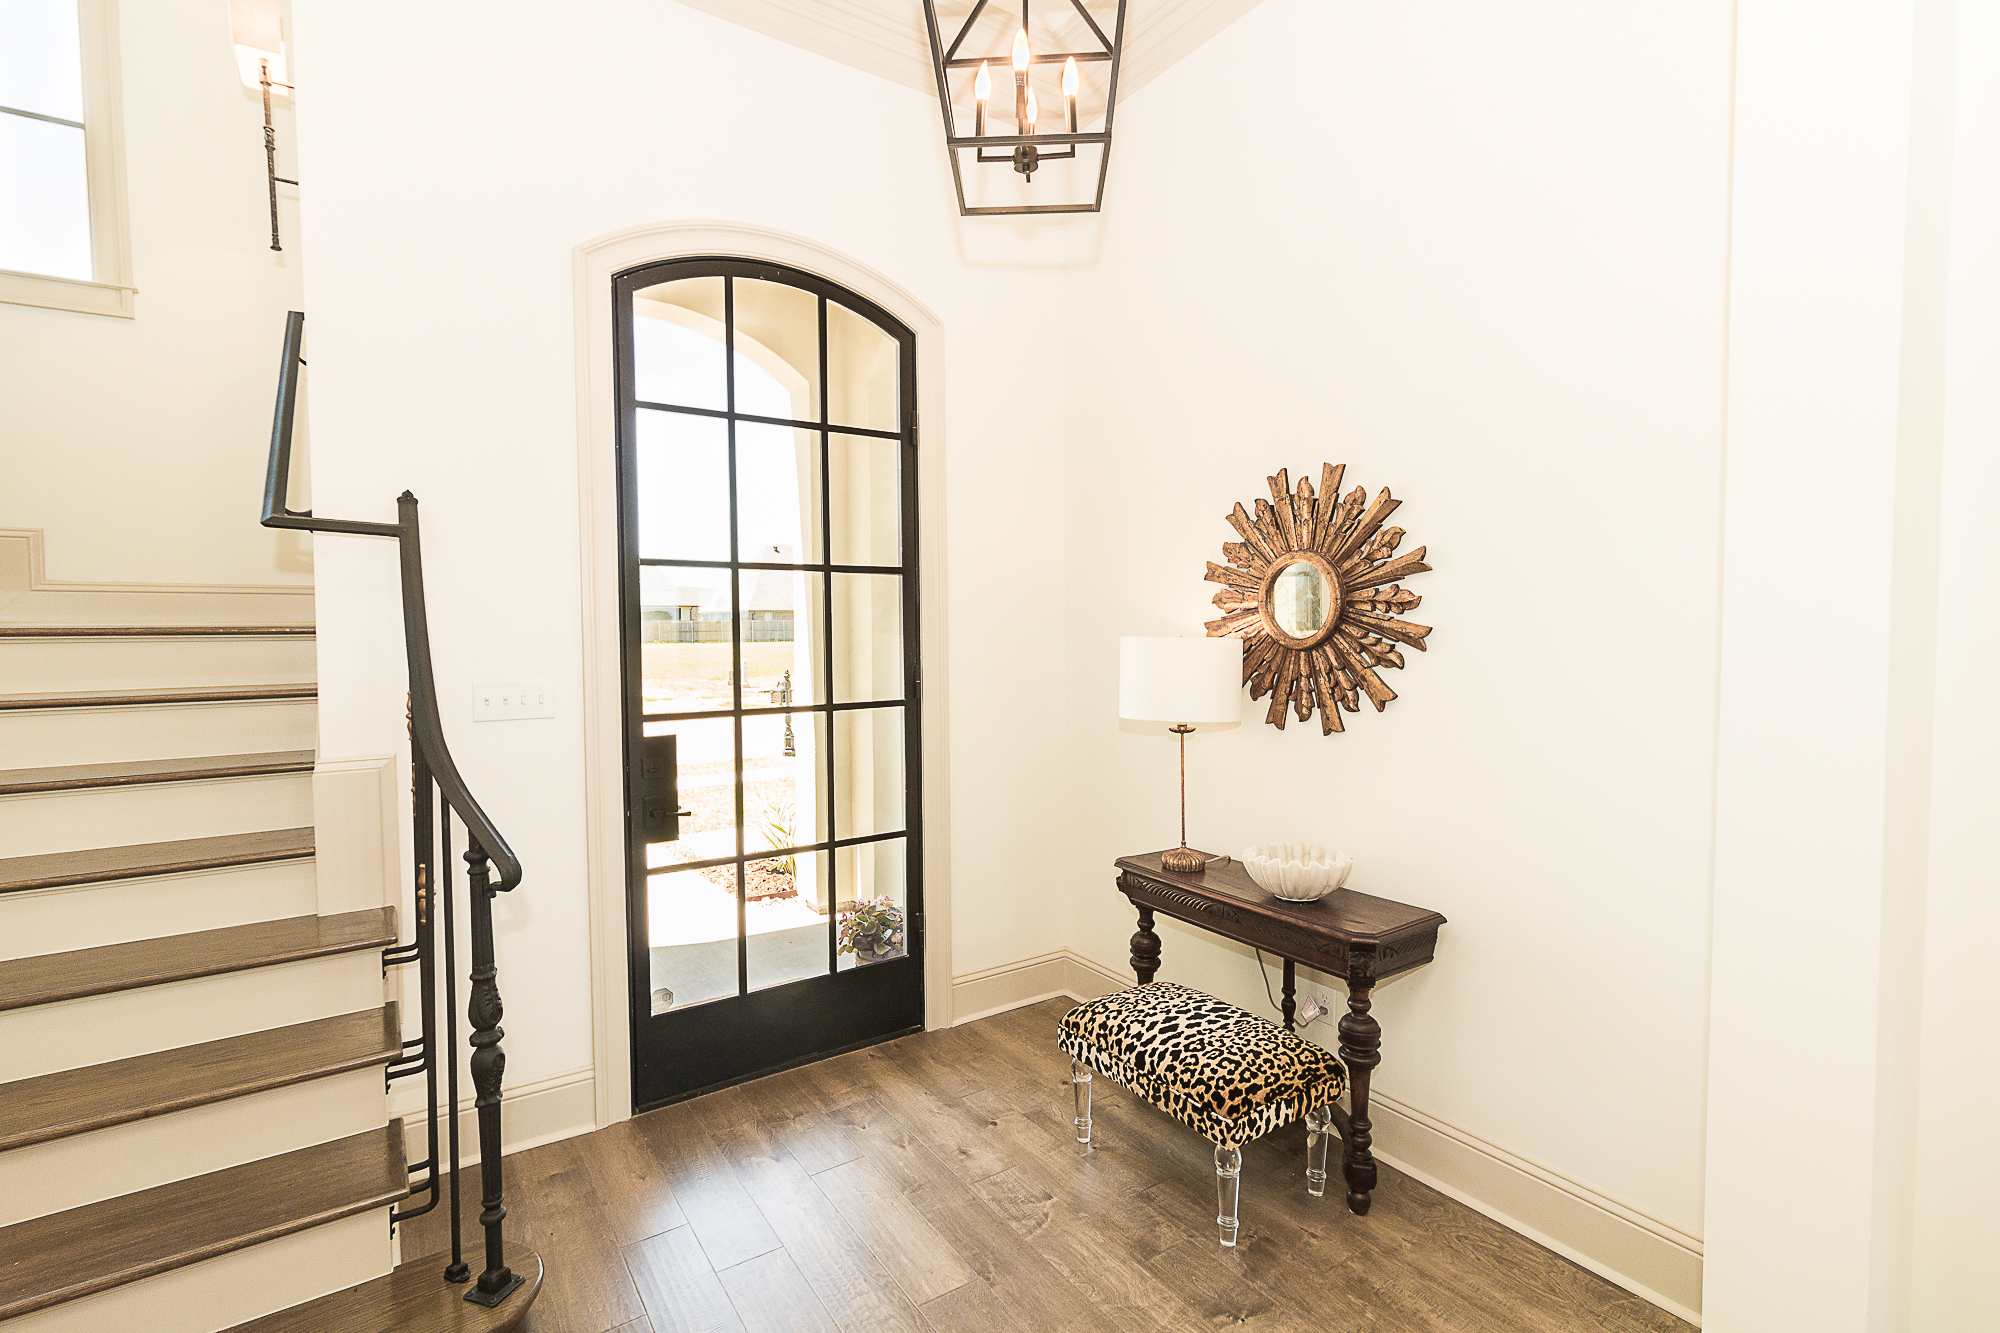 As we discussed in an earlier blog post, the front door captured everyone's attention upon entering.. the glass and steel, modern masterpiece made a great first impression!